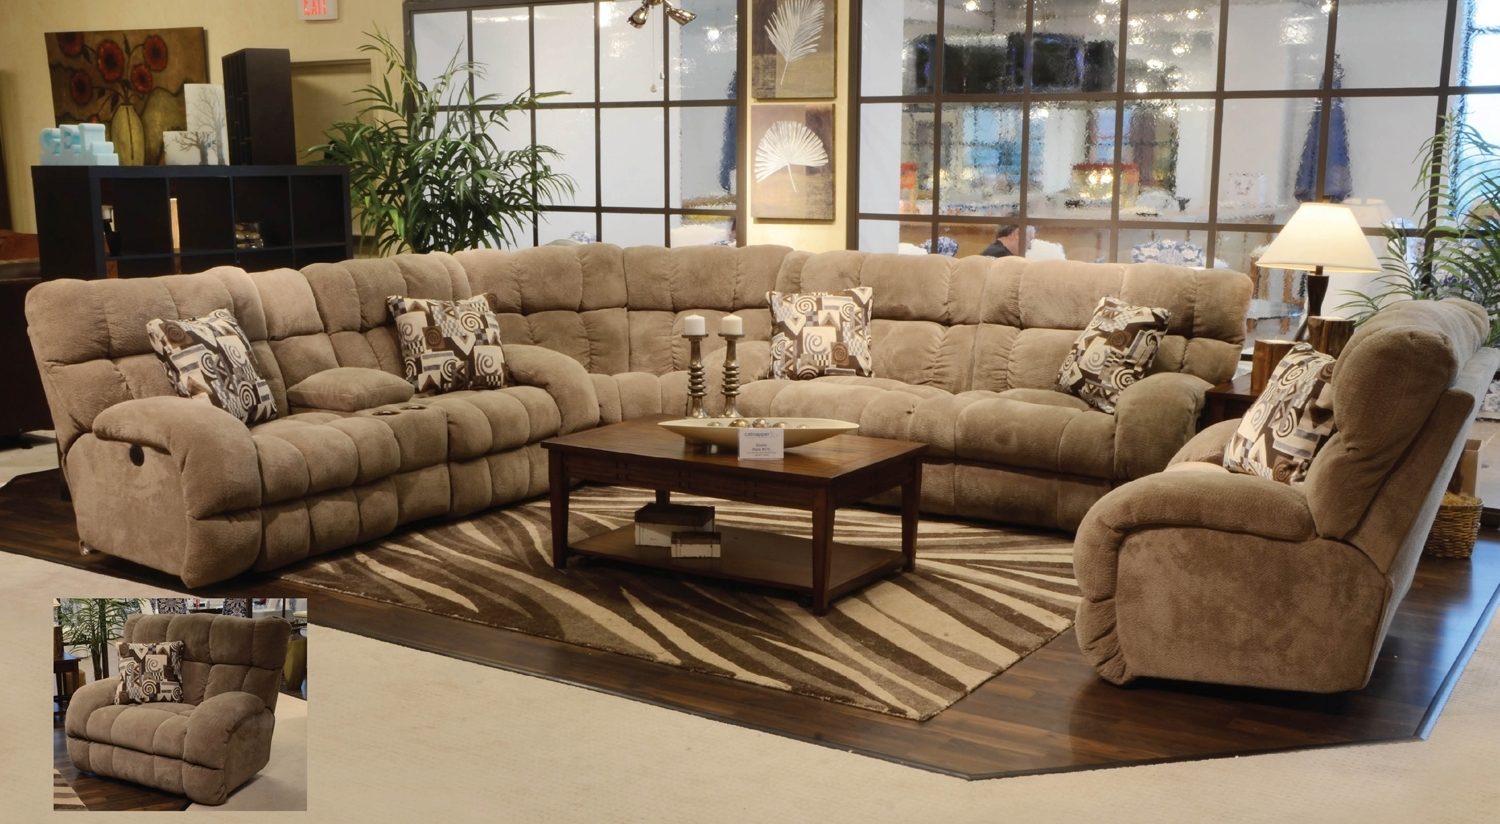 Big Couch 12 Photo Of Extra Large Sectional Sofas